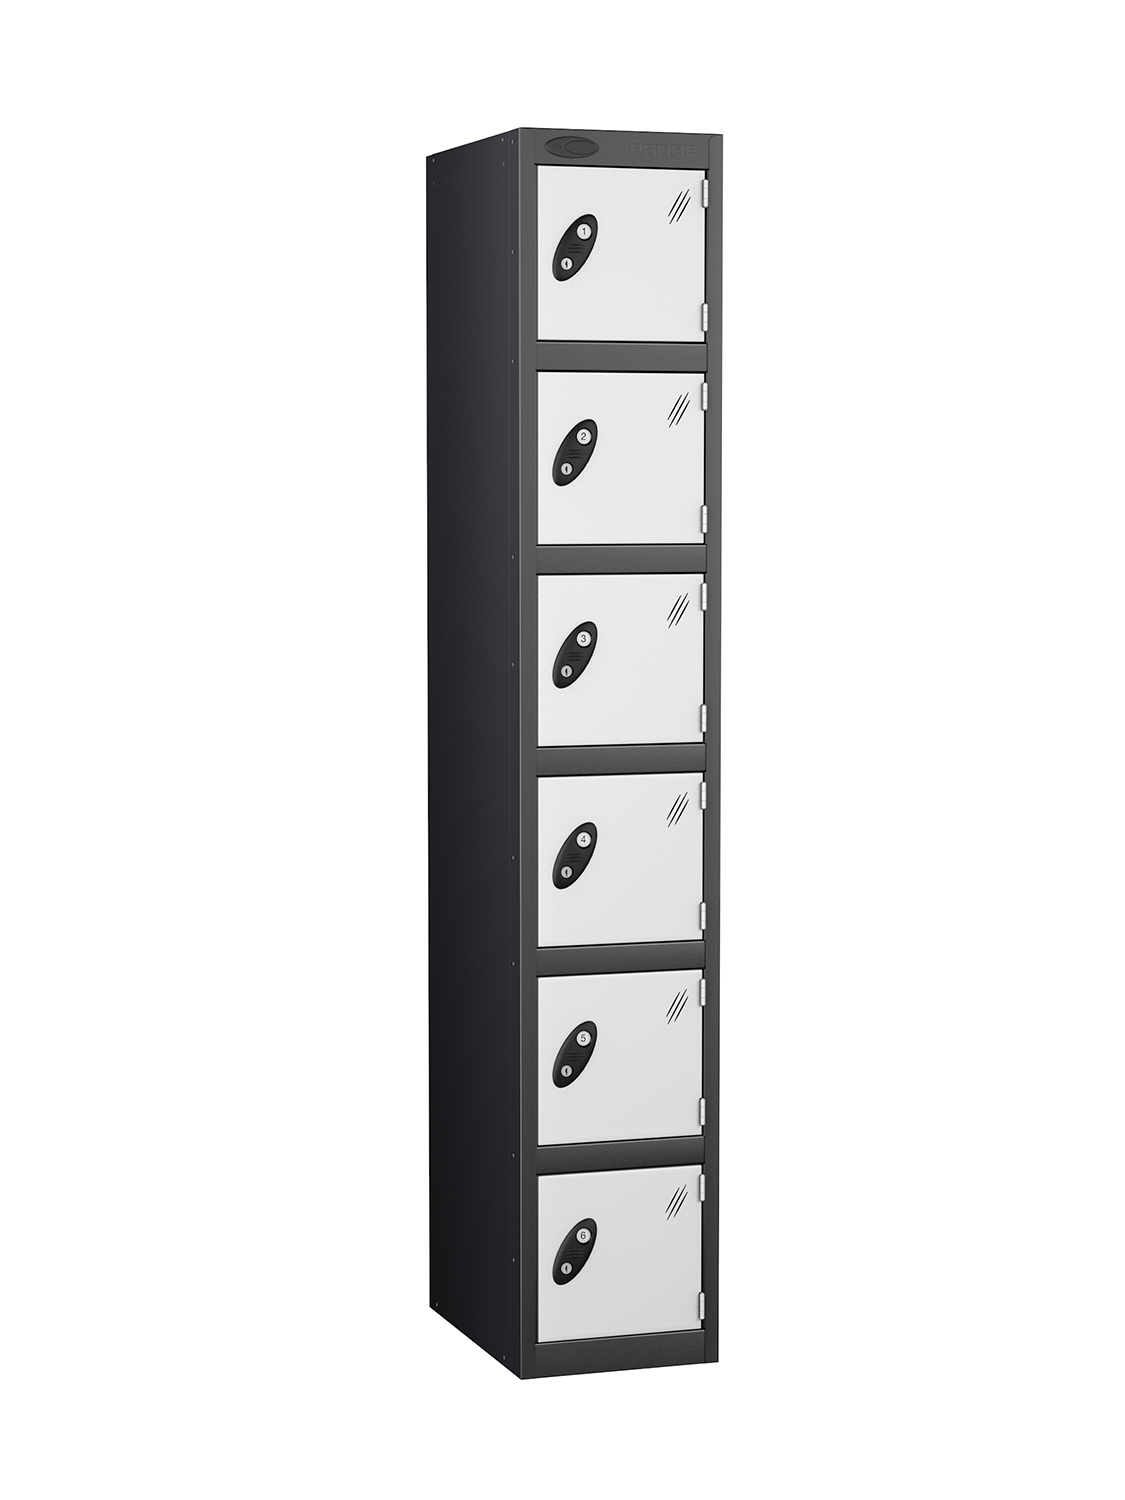 Probe 6 doors black body lockers in white